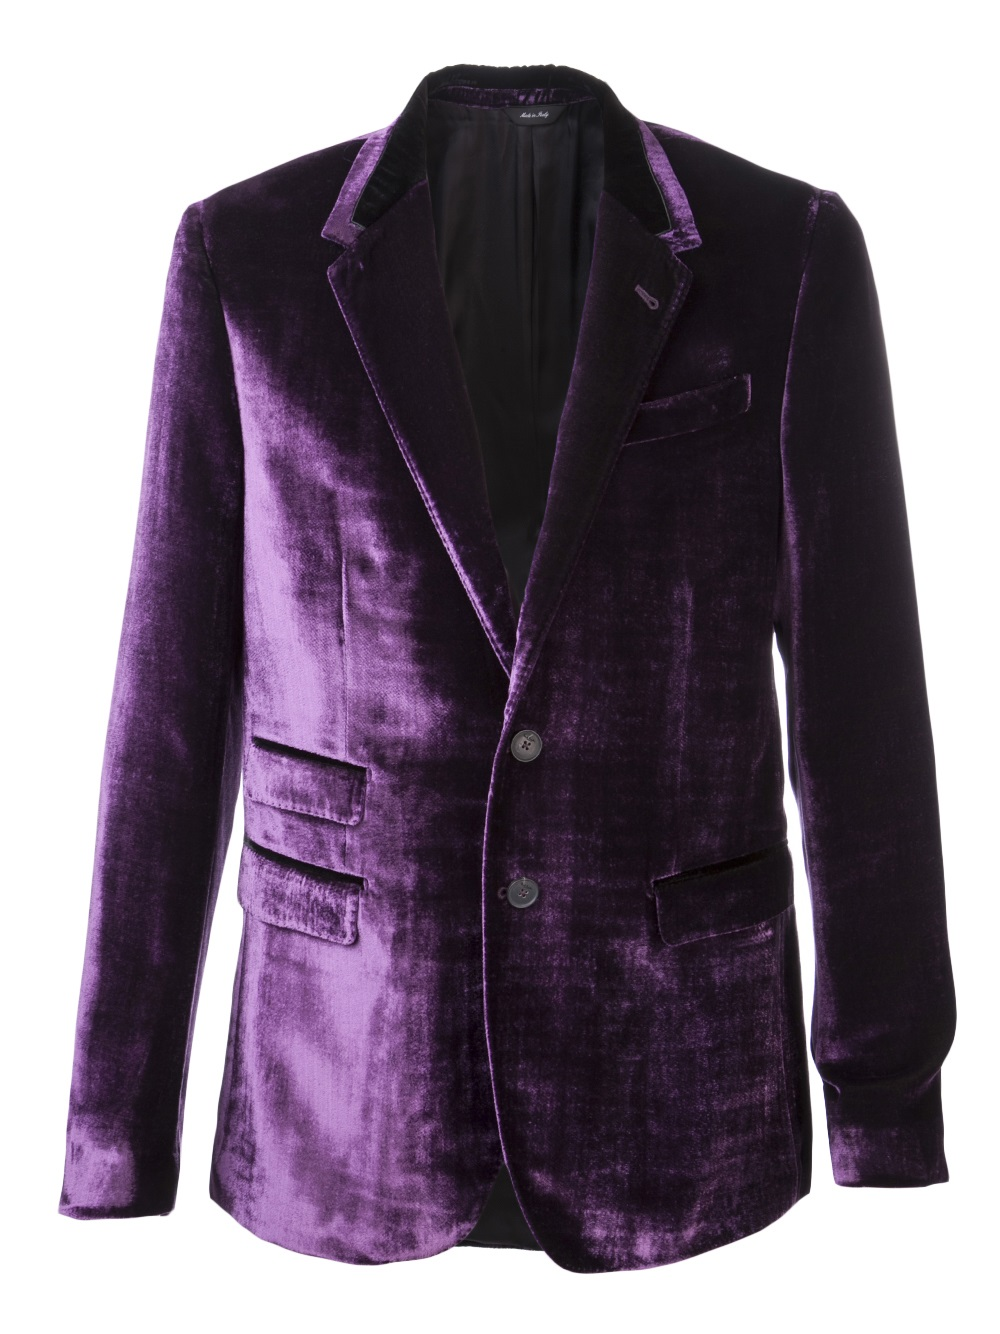 Find mens purple blazer at ShopStyle. Shop the latest collection of mens purple blazer from the most popular stores - all in one place.